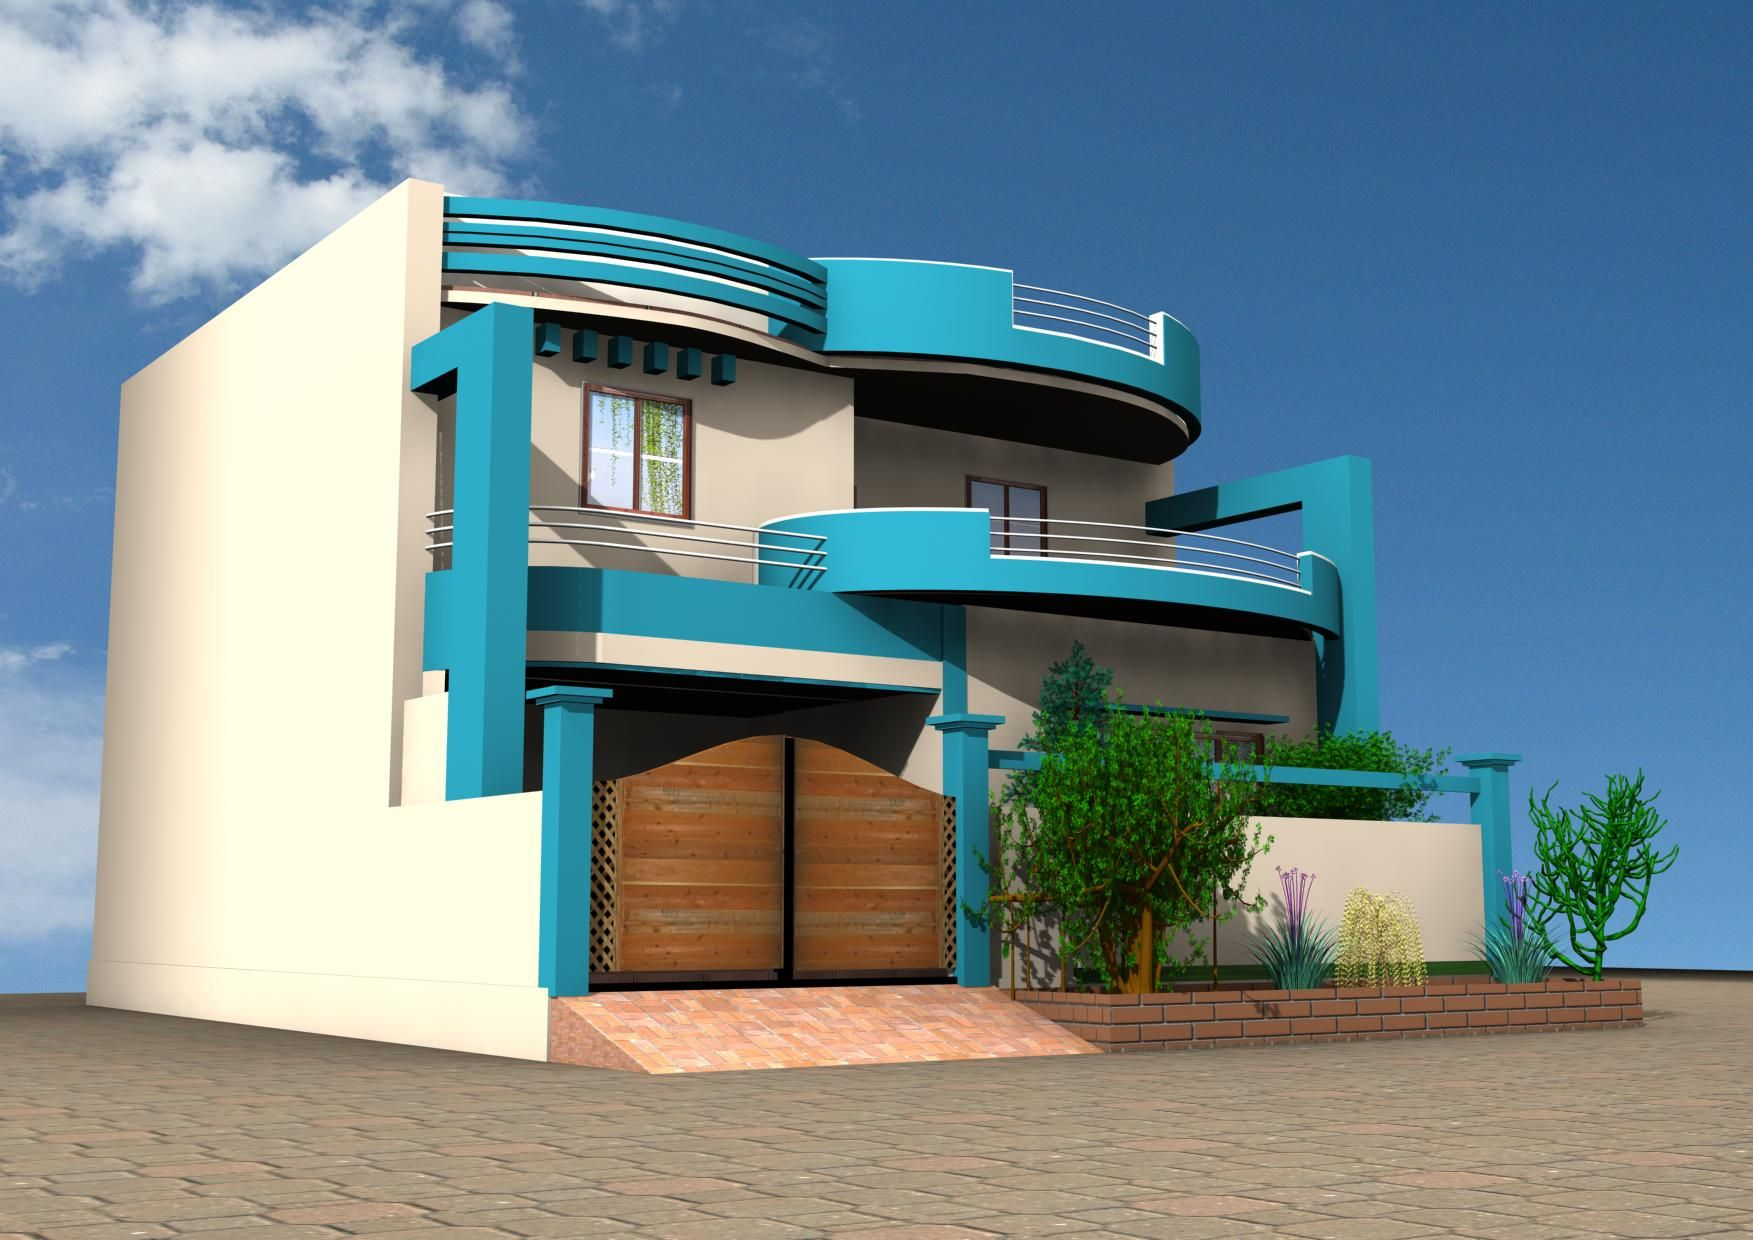 3d home design images hd 1080p 3d design